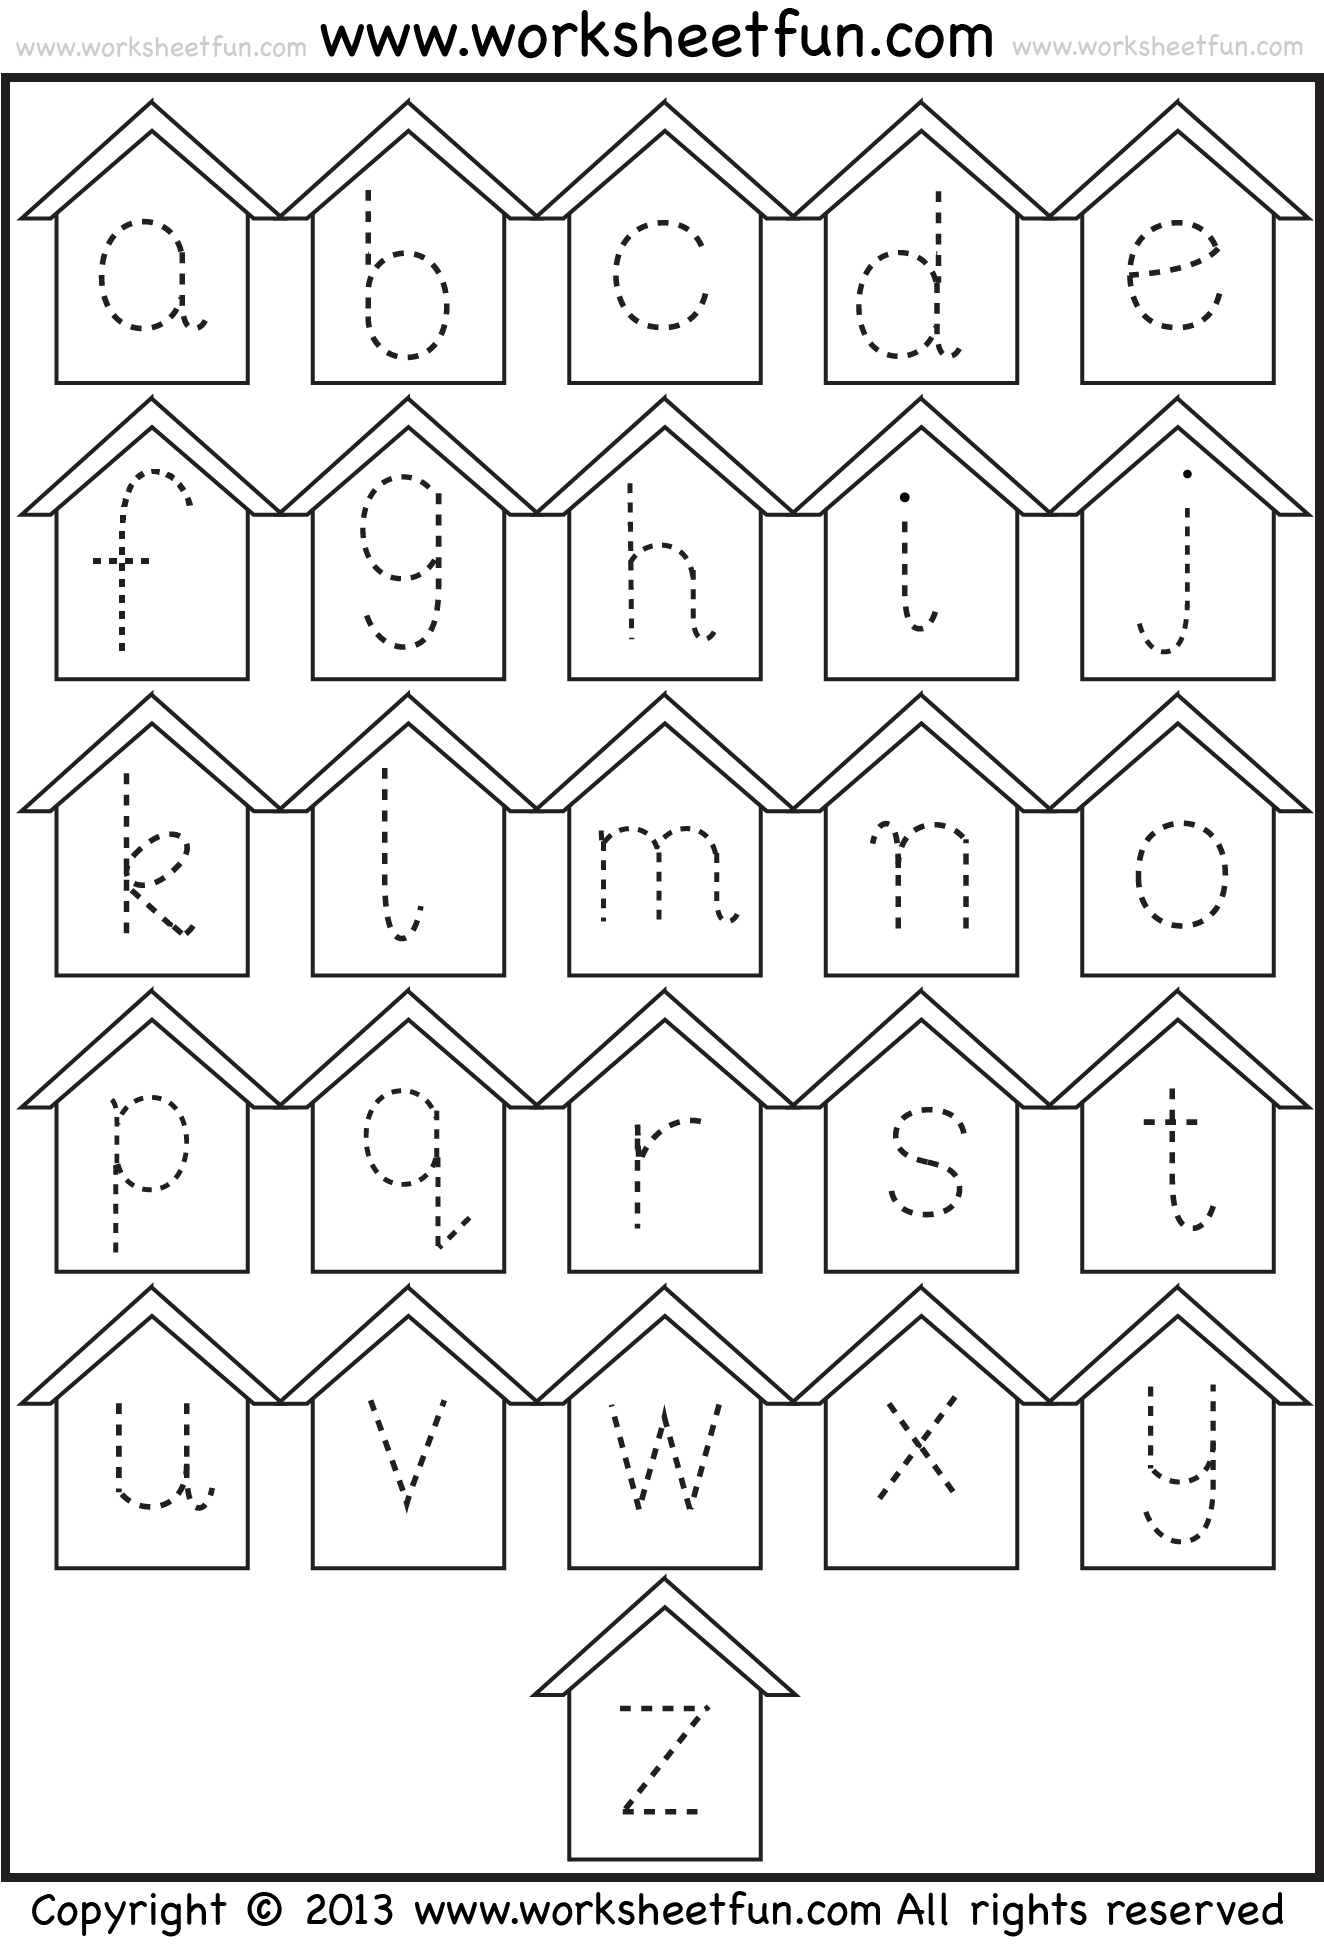 Small Letter Tracing Lowercase Worksheet Birdhouse Free Printable Worksheets Worksheetfun